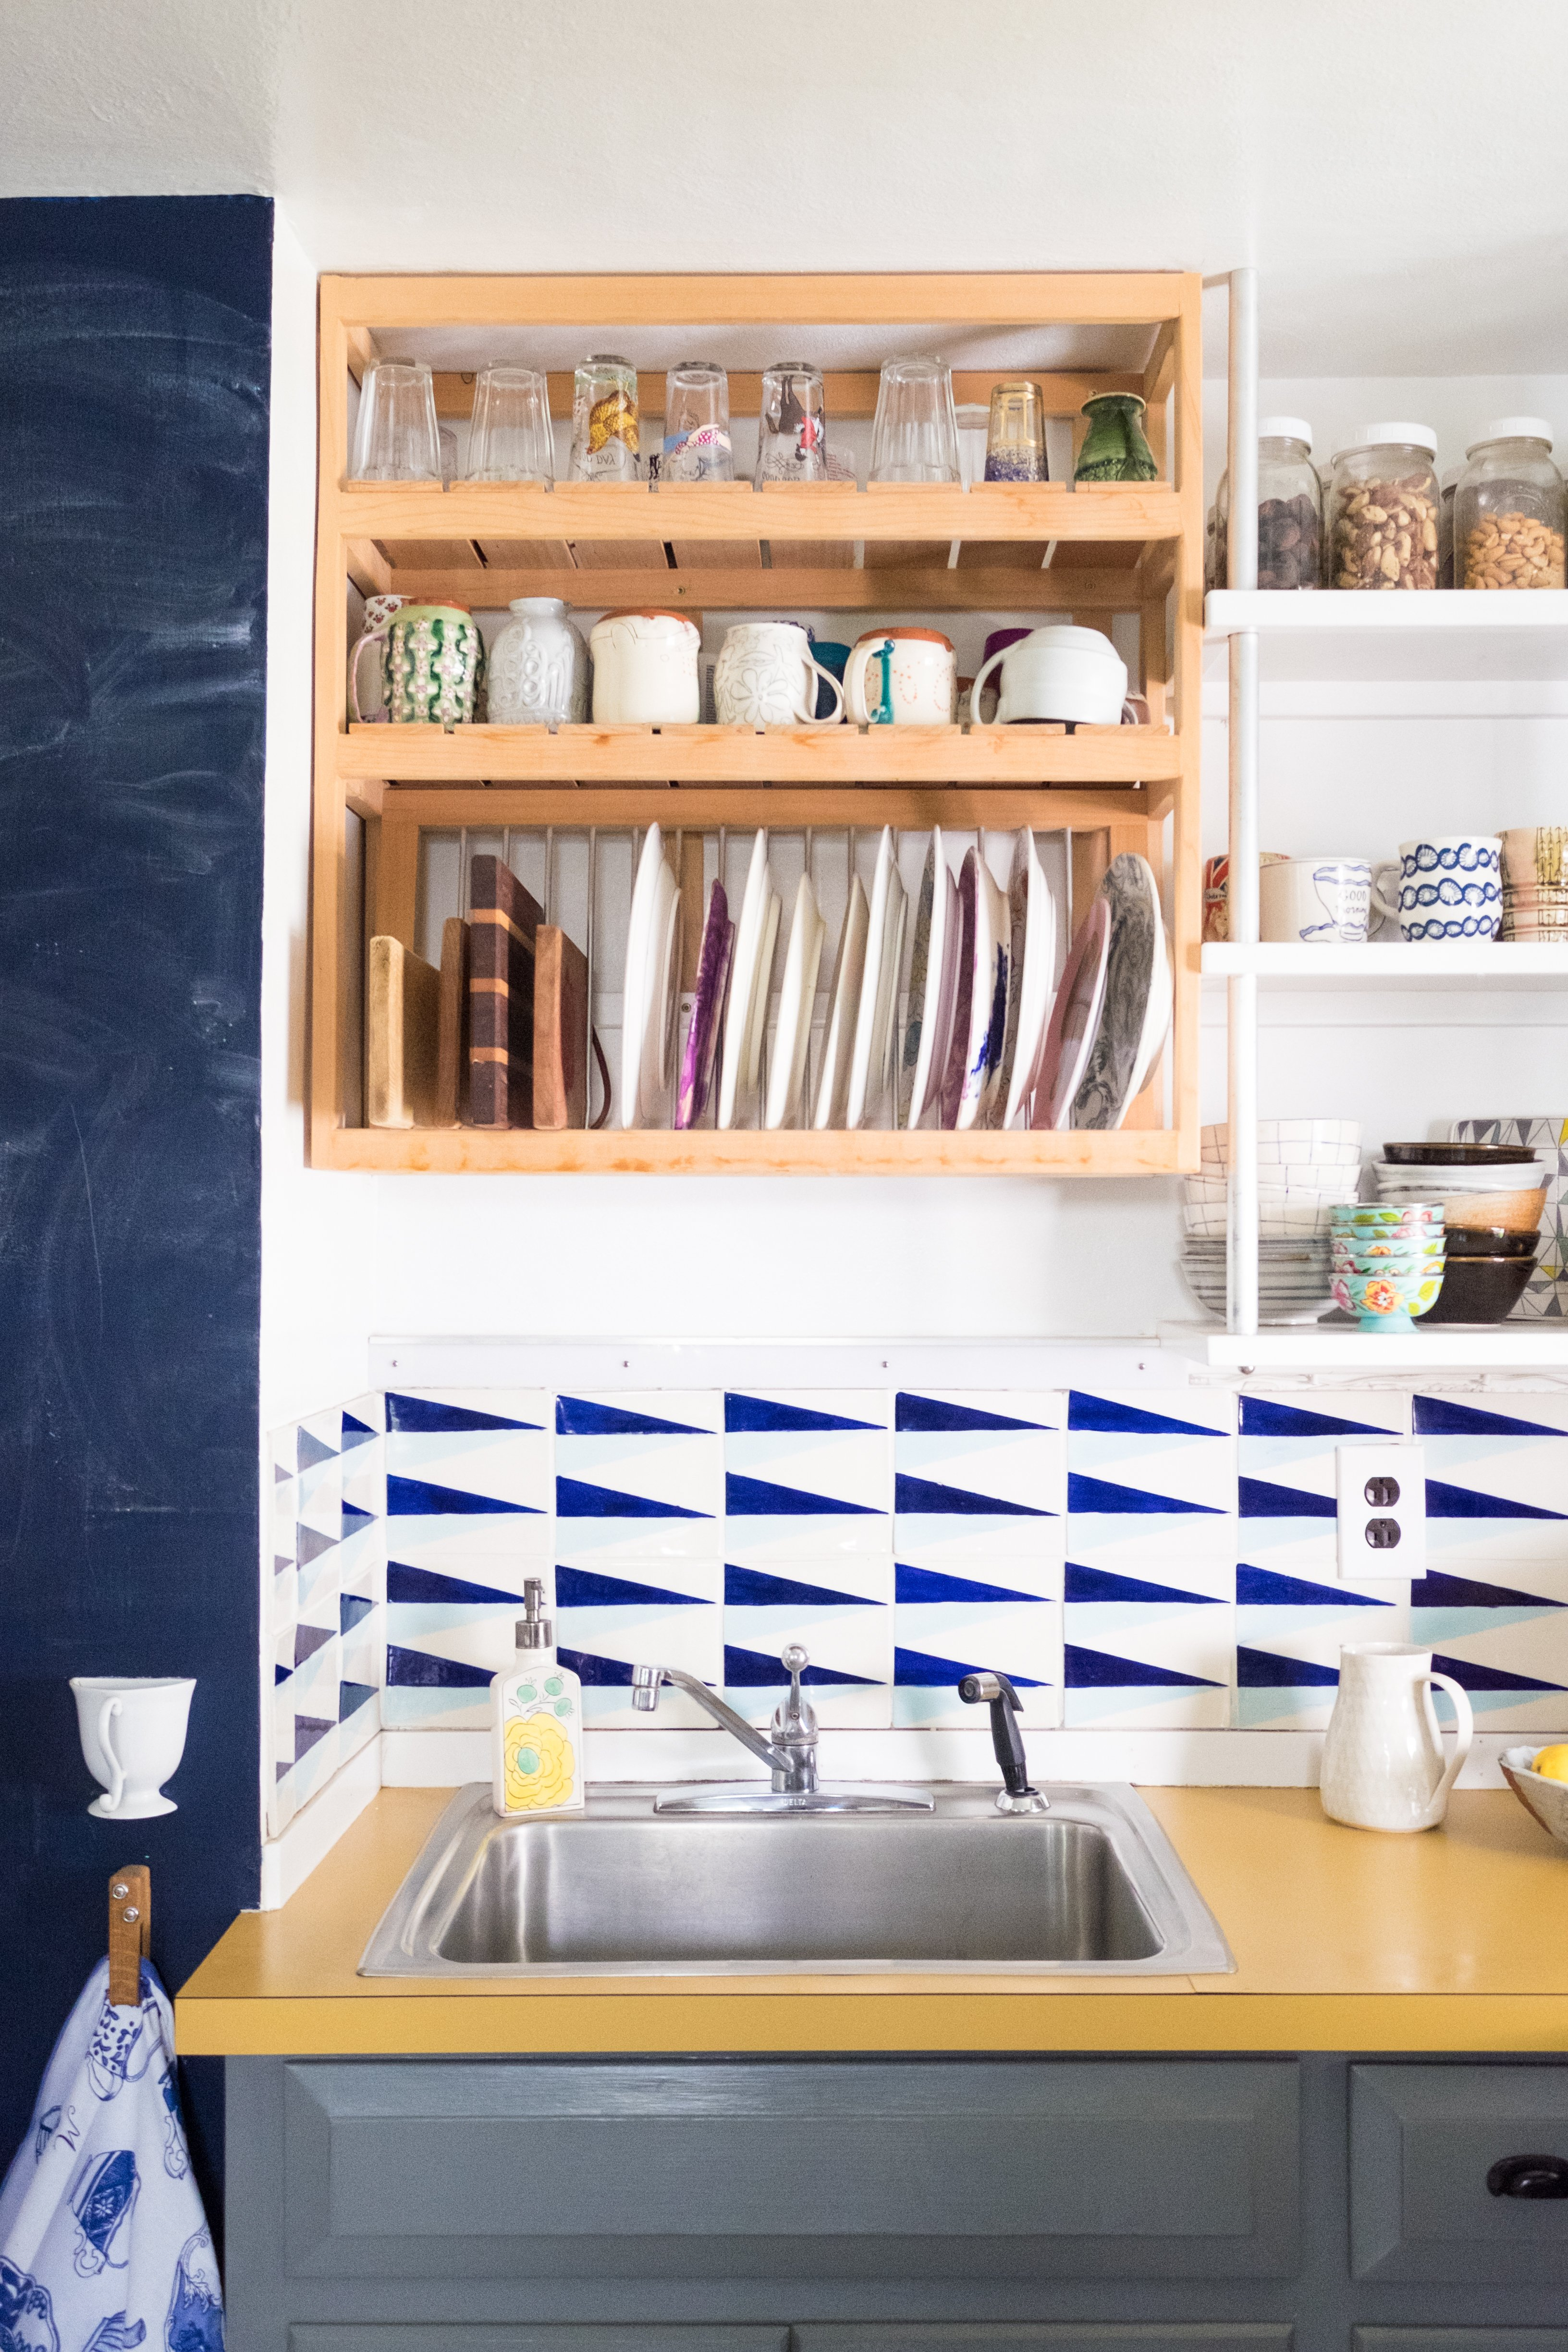 9 Ways To Organize A Kitchen Without Many Or Any Cabinets Apartment Therapy